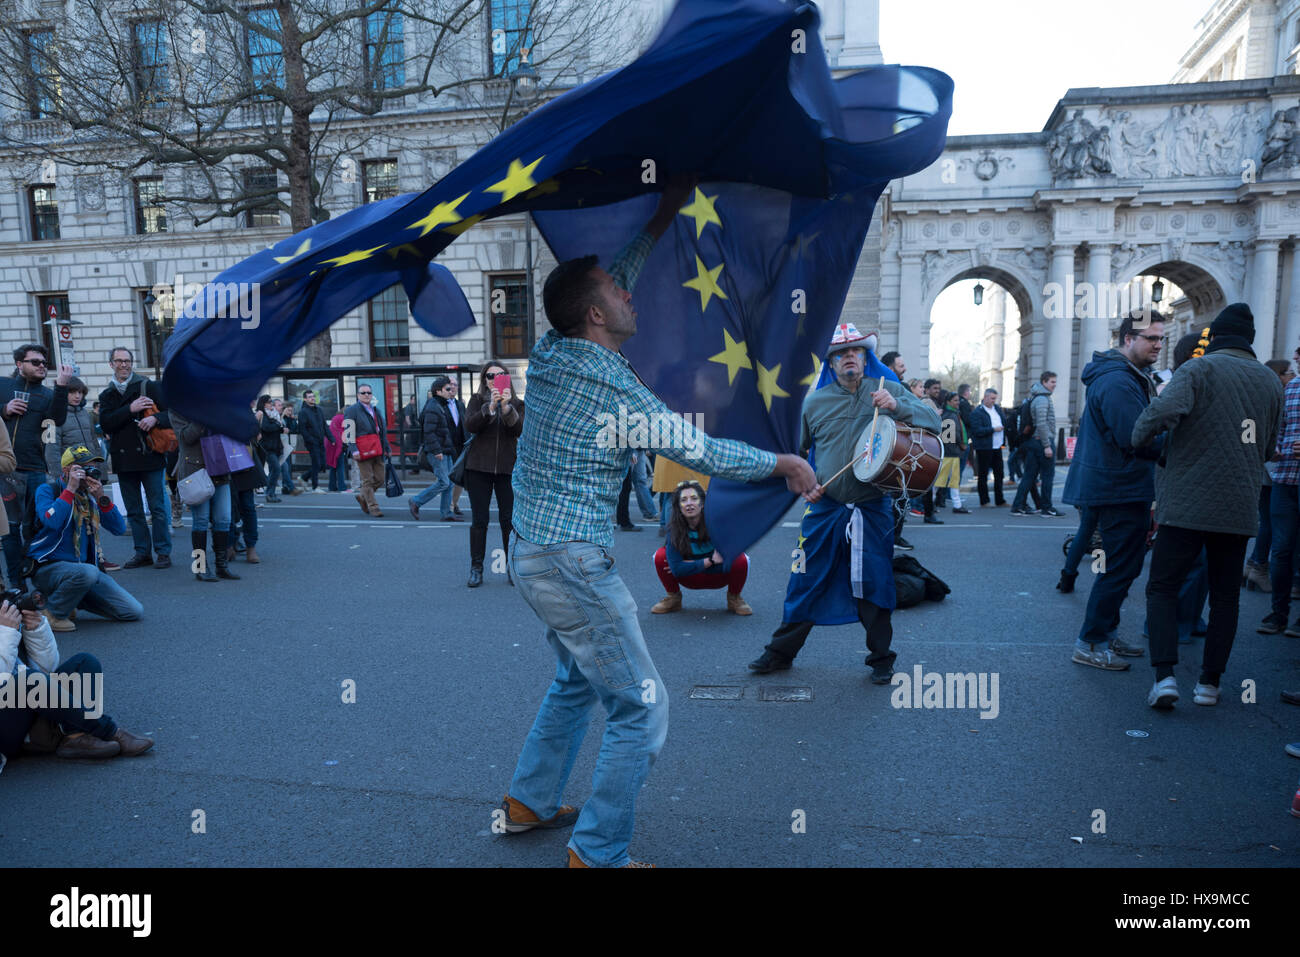 a protestor is dancing along to music using european flags to stock